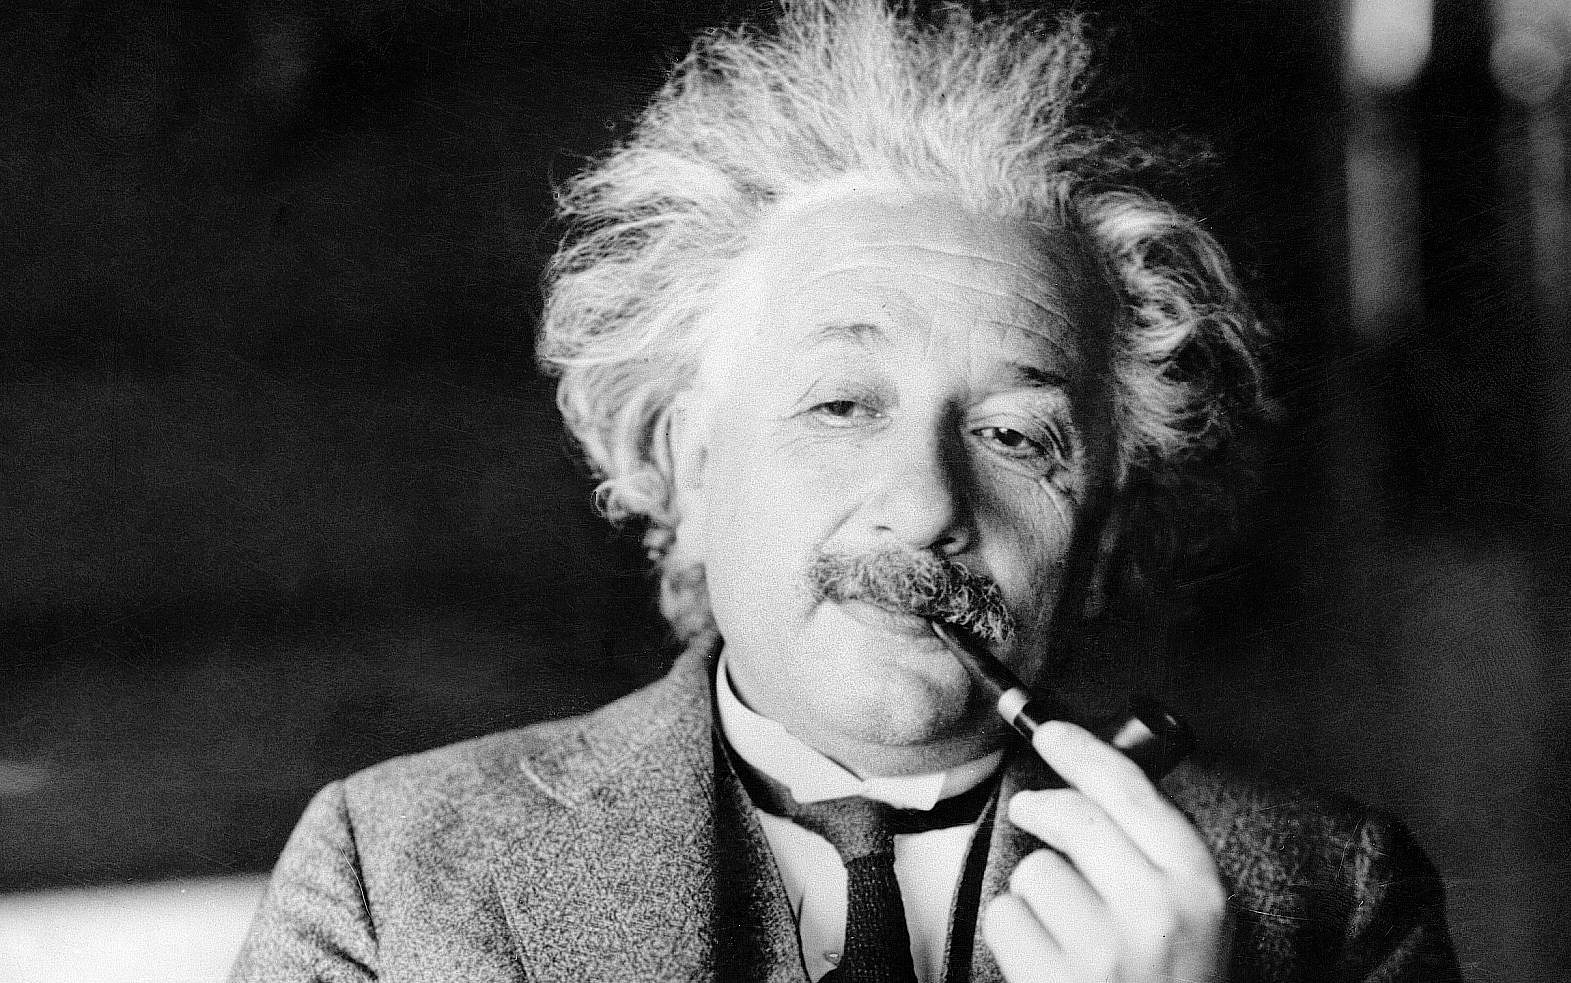 Newly revealed Albert Einstein letters provide glimpse into his genius mind